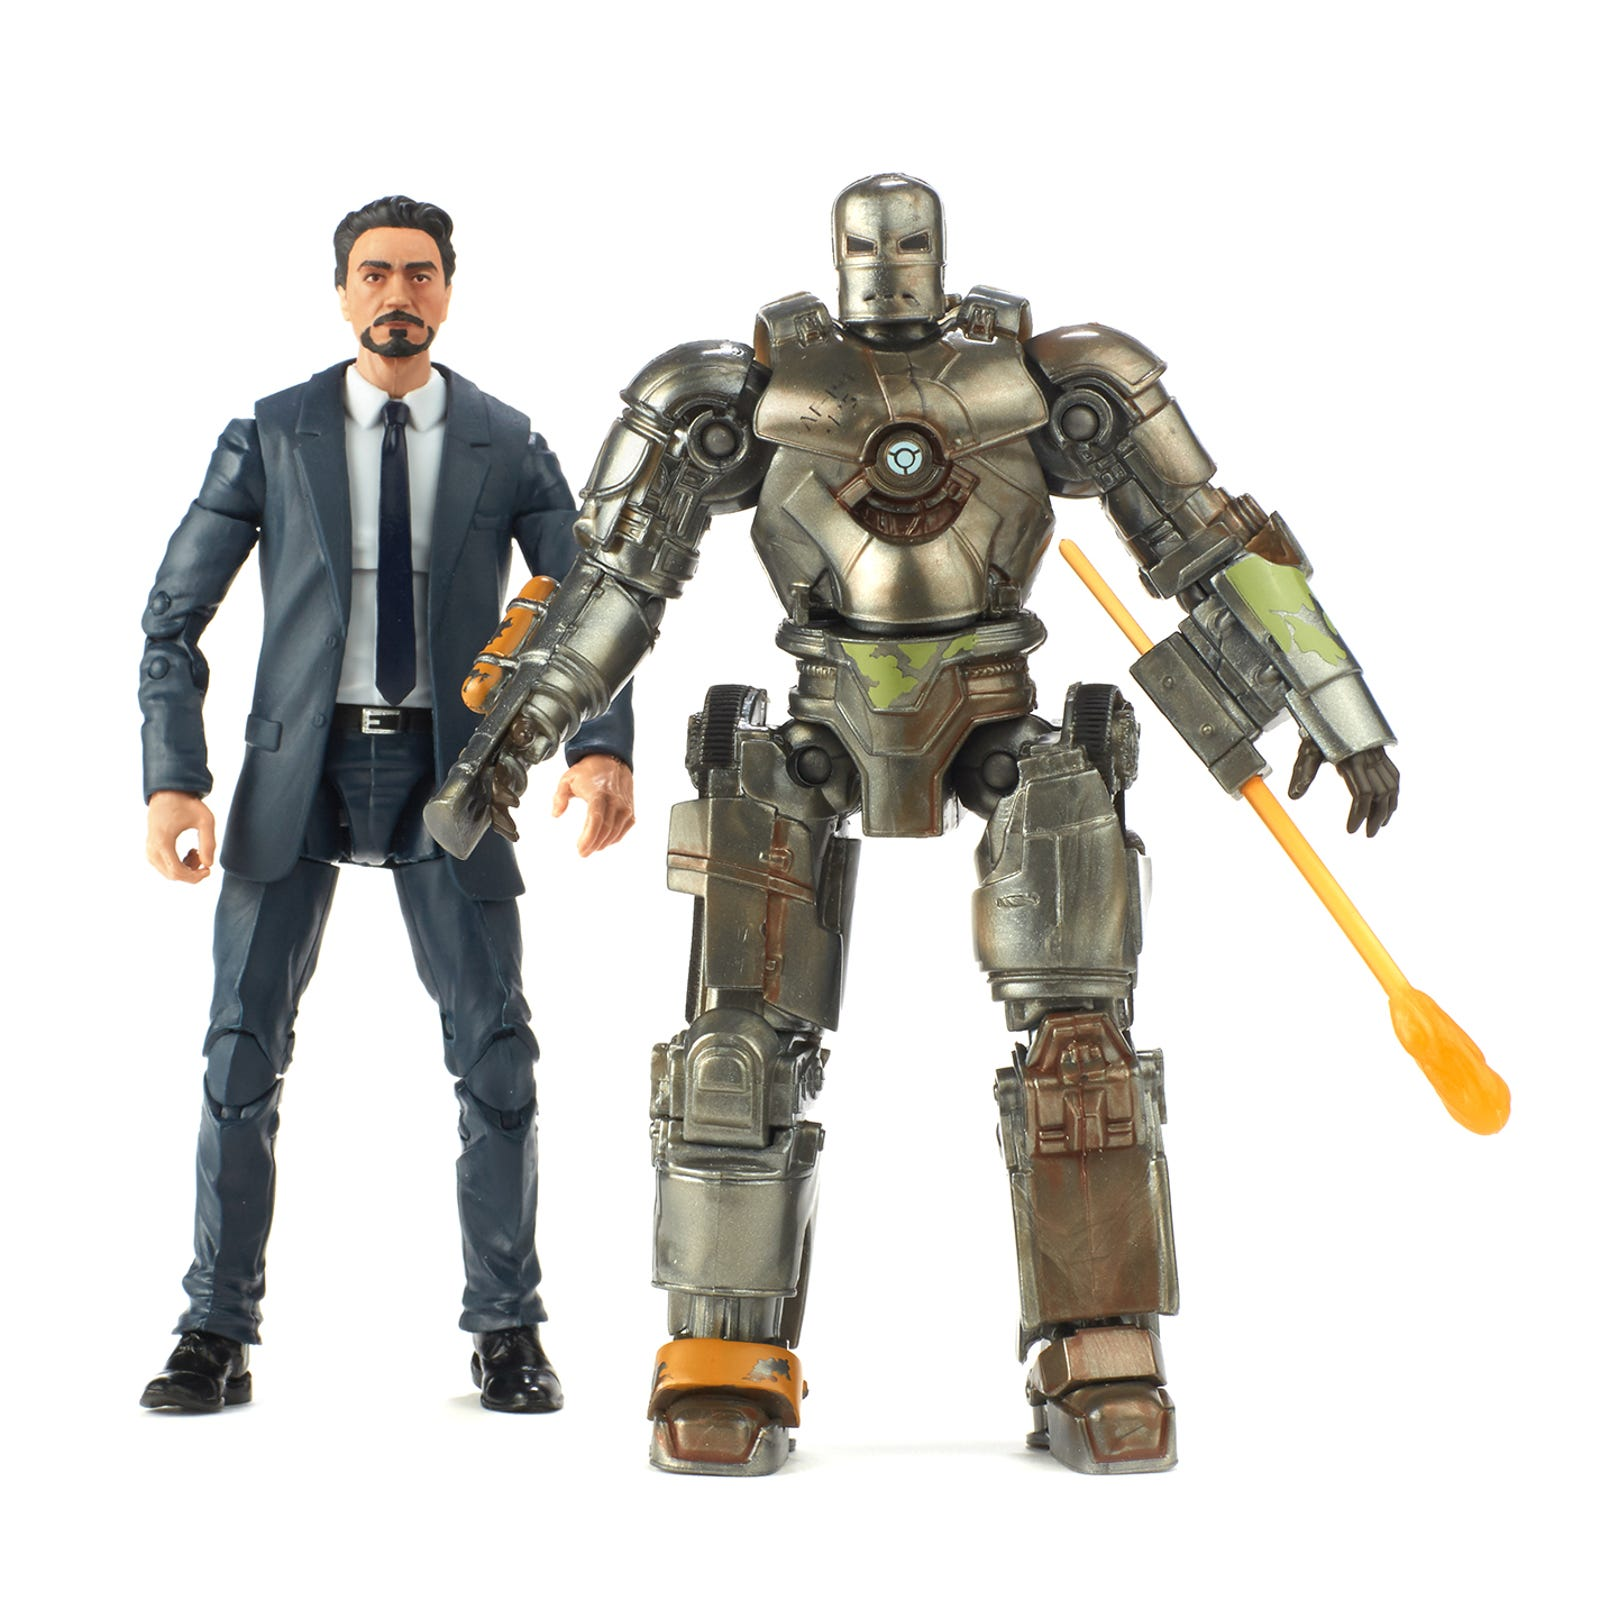 Iron Man: Tony Stark and Iron Man MK I Two-Pack.